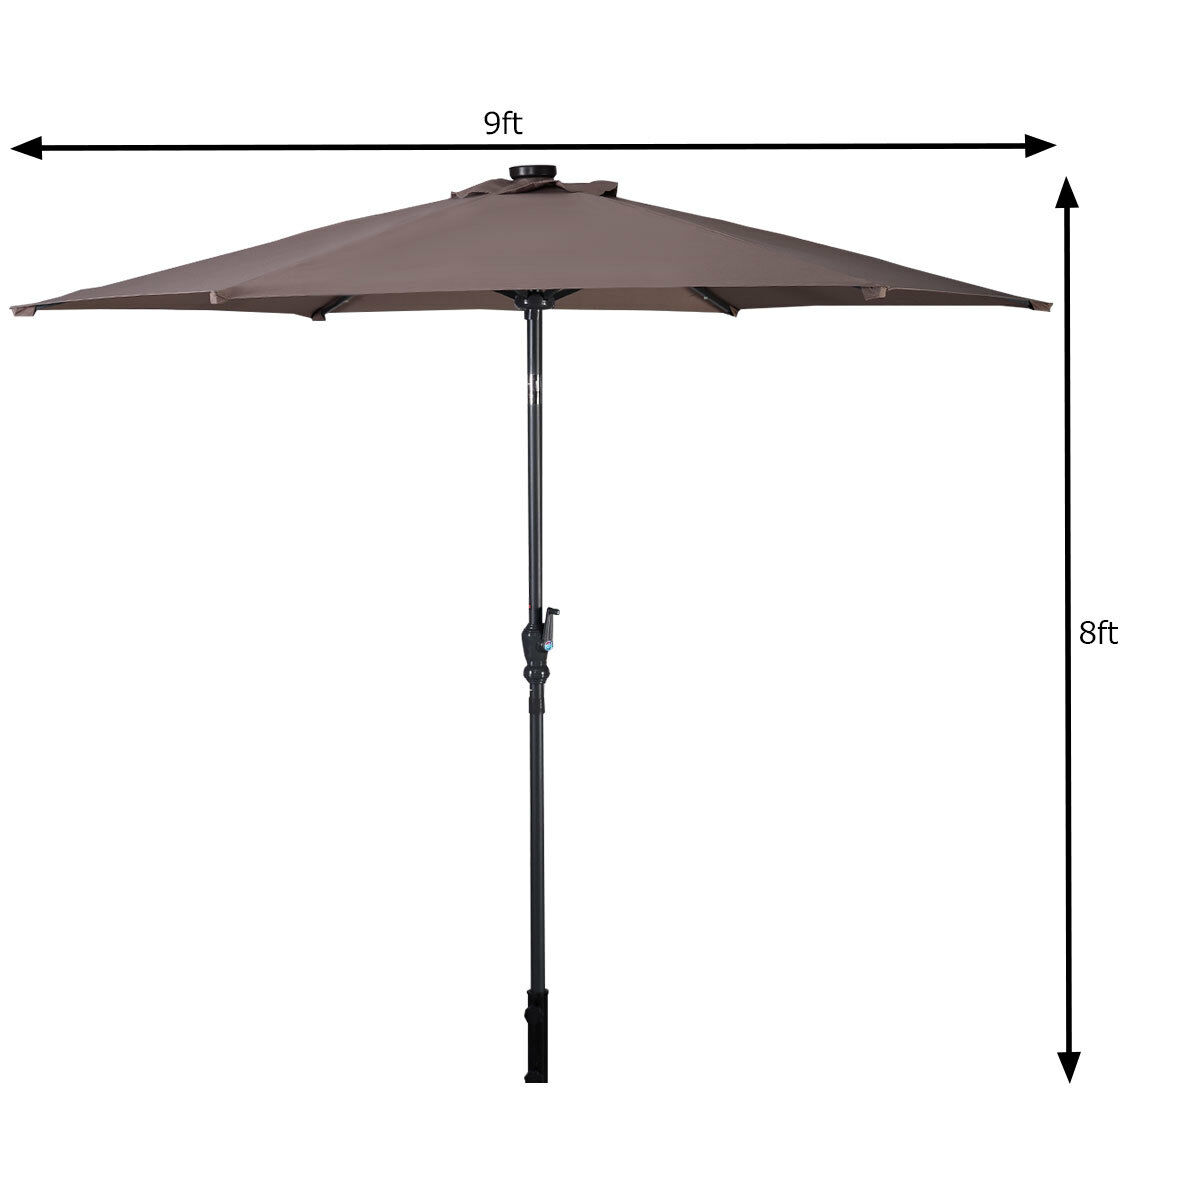 9FT-Patio-Solar-Umbrella-LED-Patio-Market-Steel-Tilt-W-Crank-Outdoor-GOPLUS-New thumbnail 29